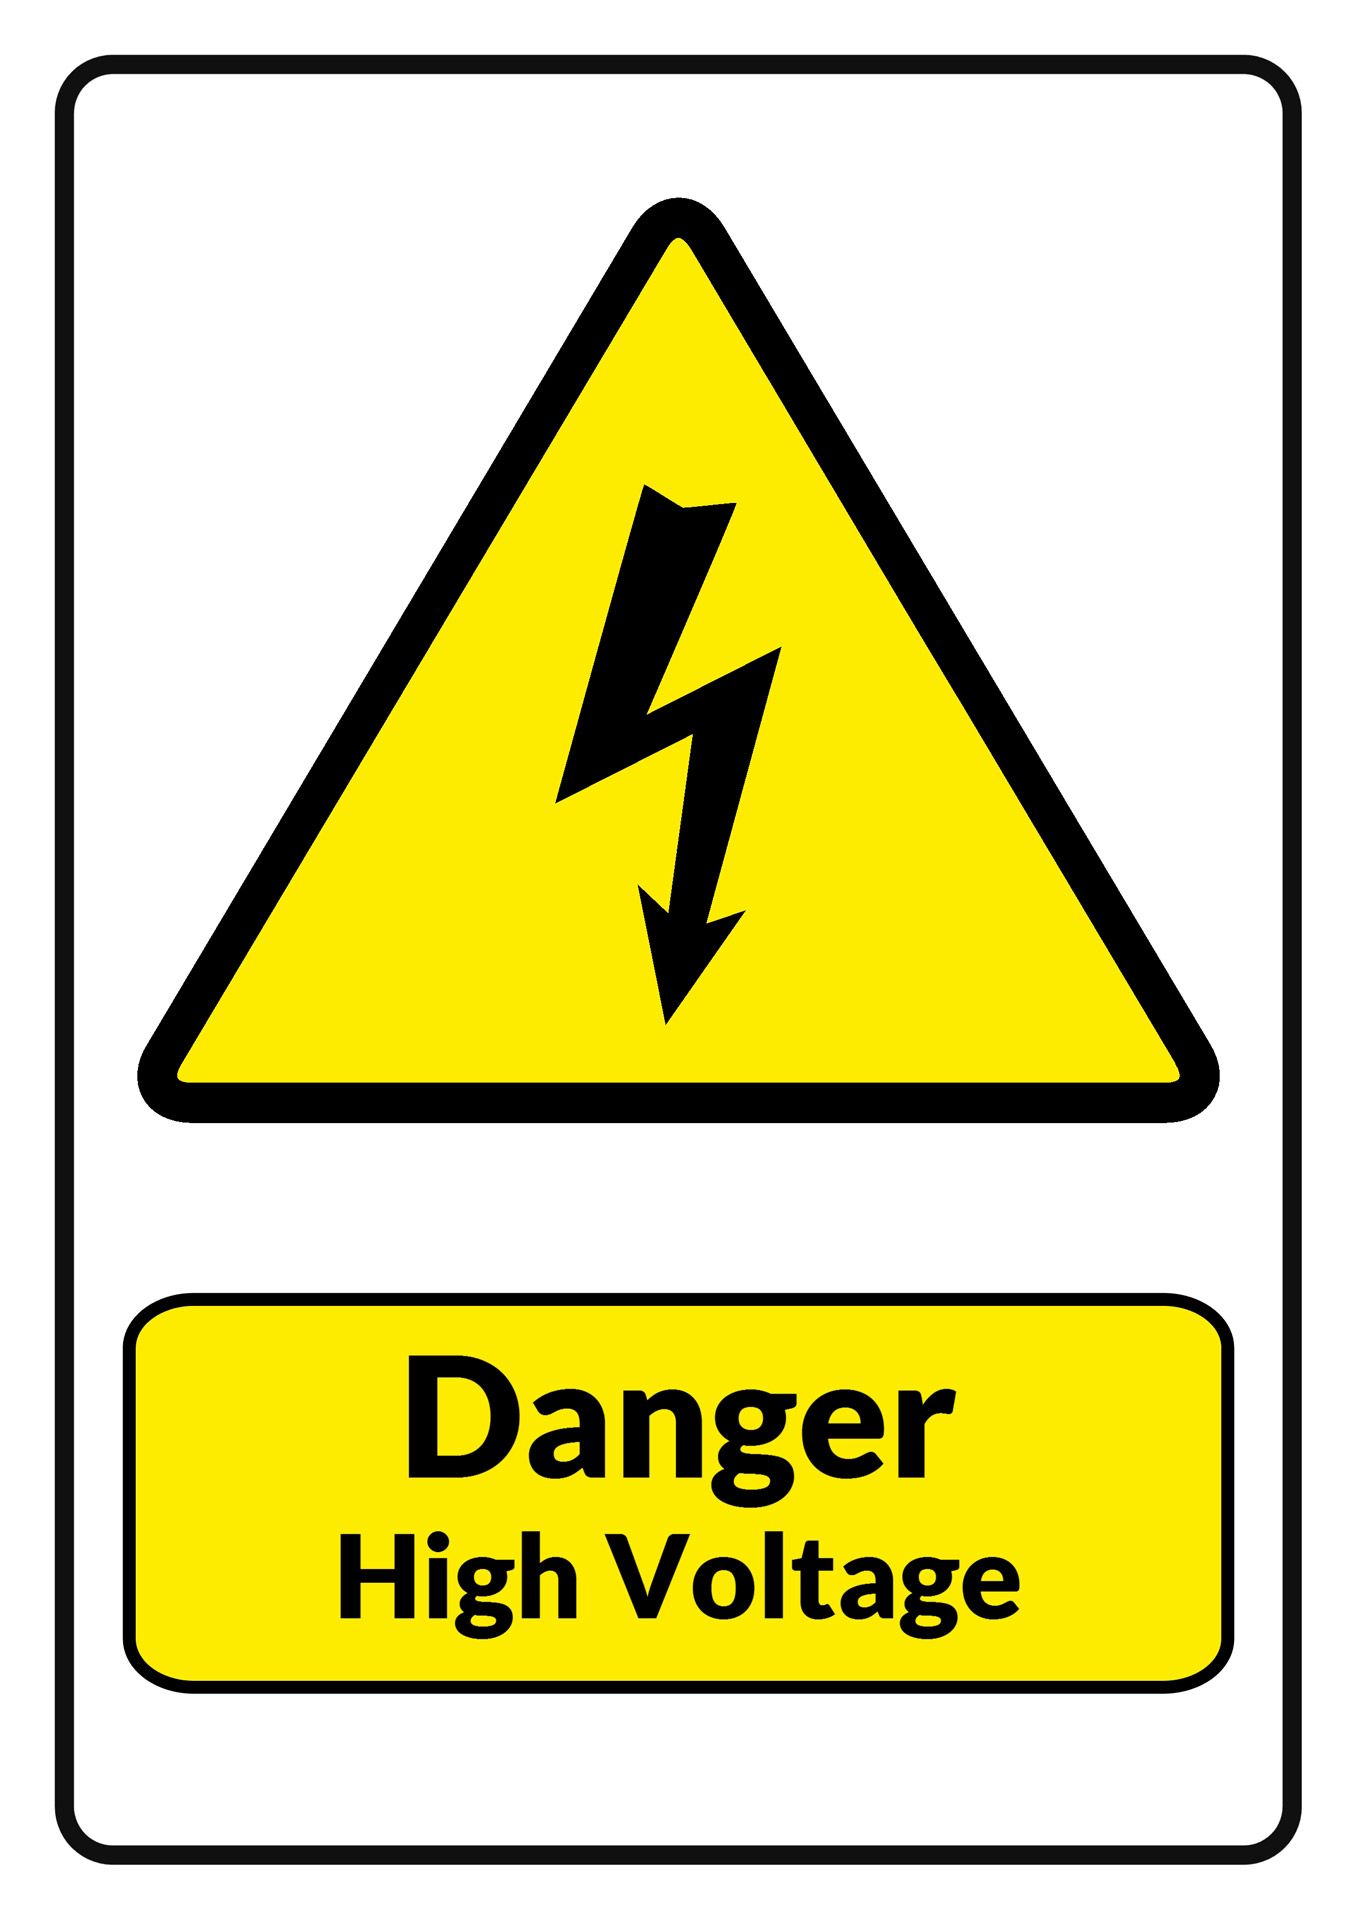 Danger High Voltage Warning Sign Free Stock Photo - Public Domain ...